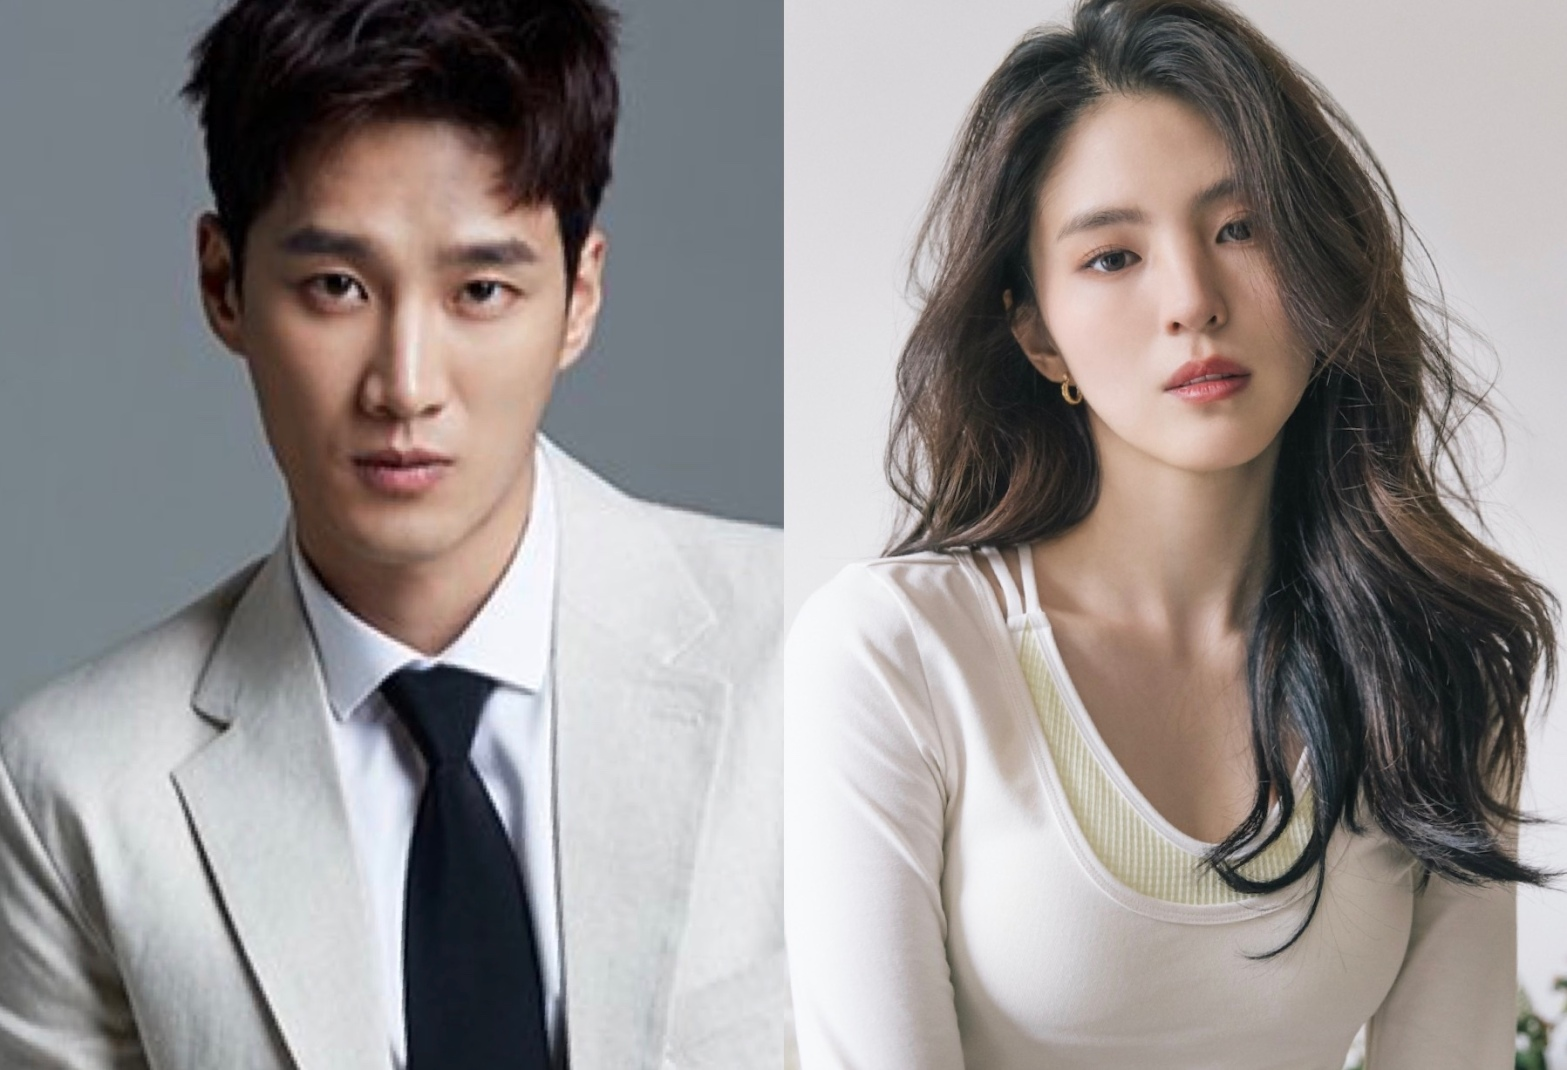 Ahn Bo Hyun and Han So Hee in talks for Netflix drama - Nemsis.